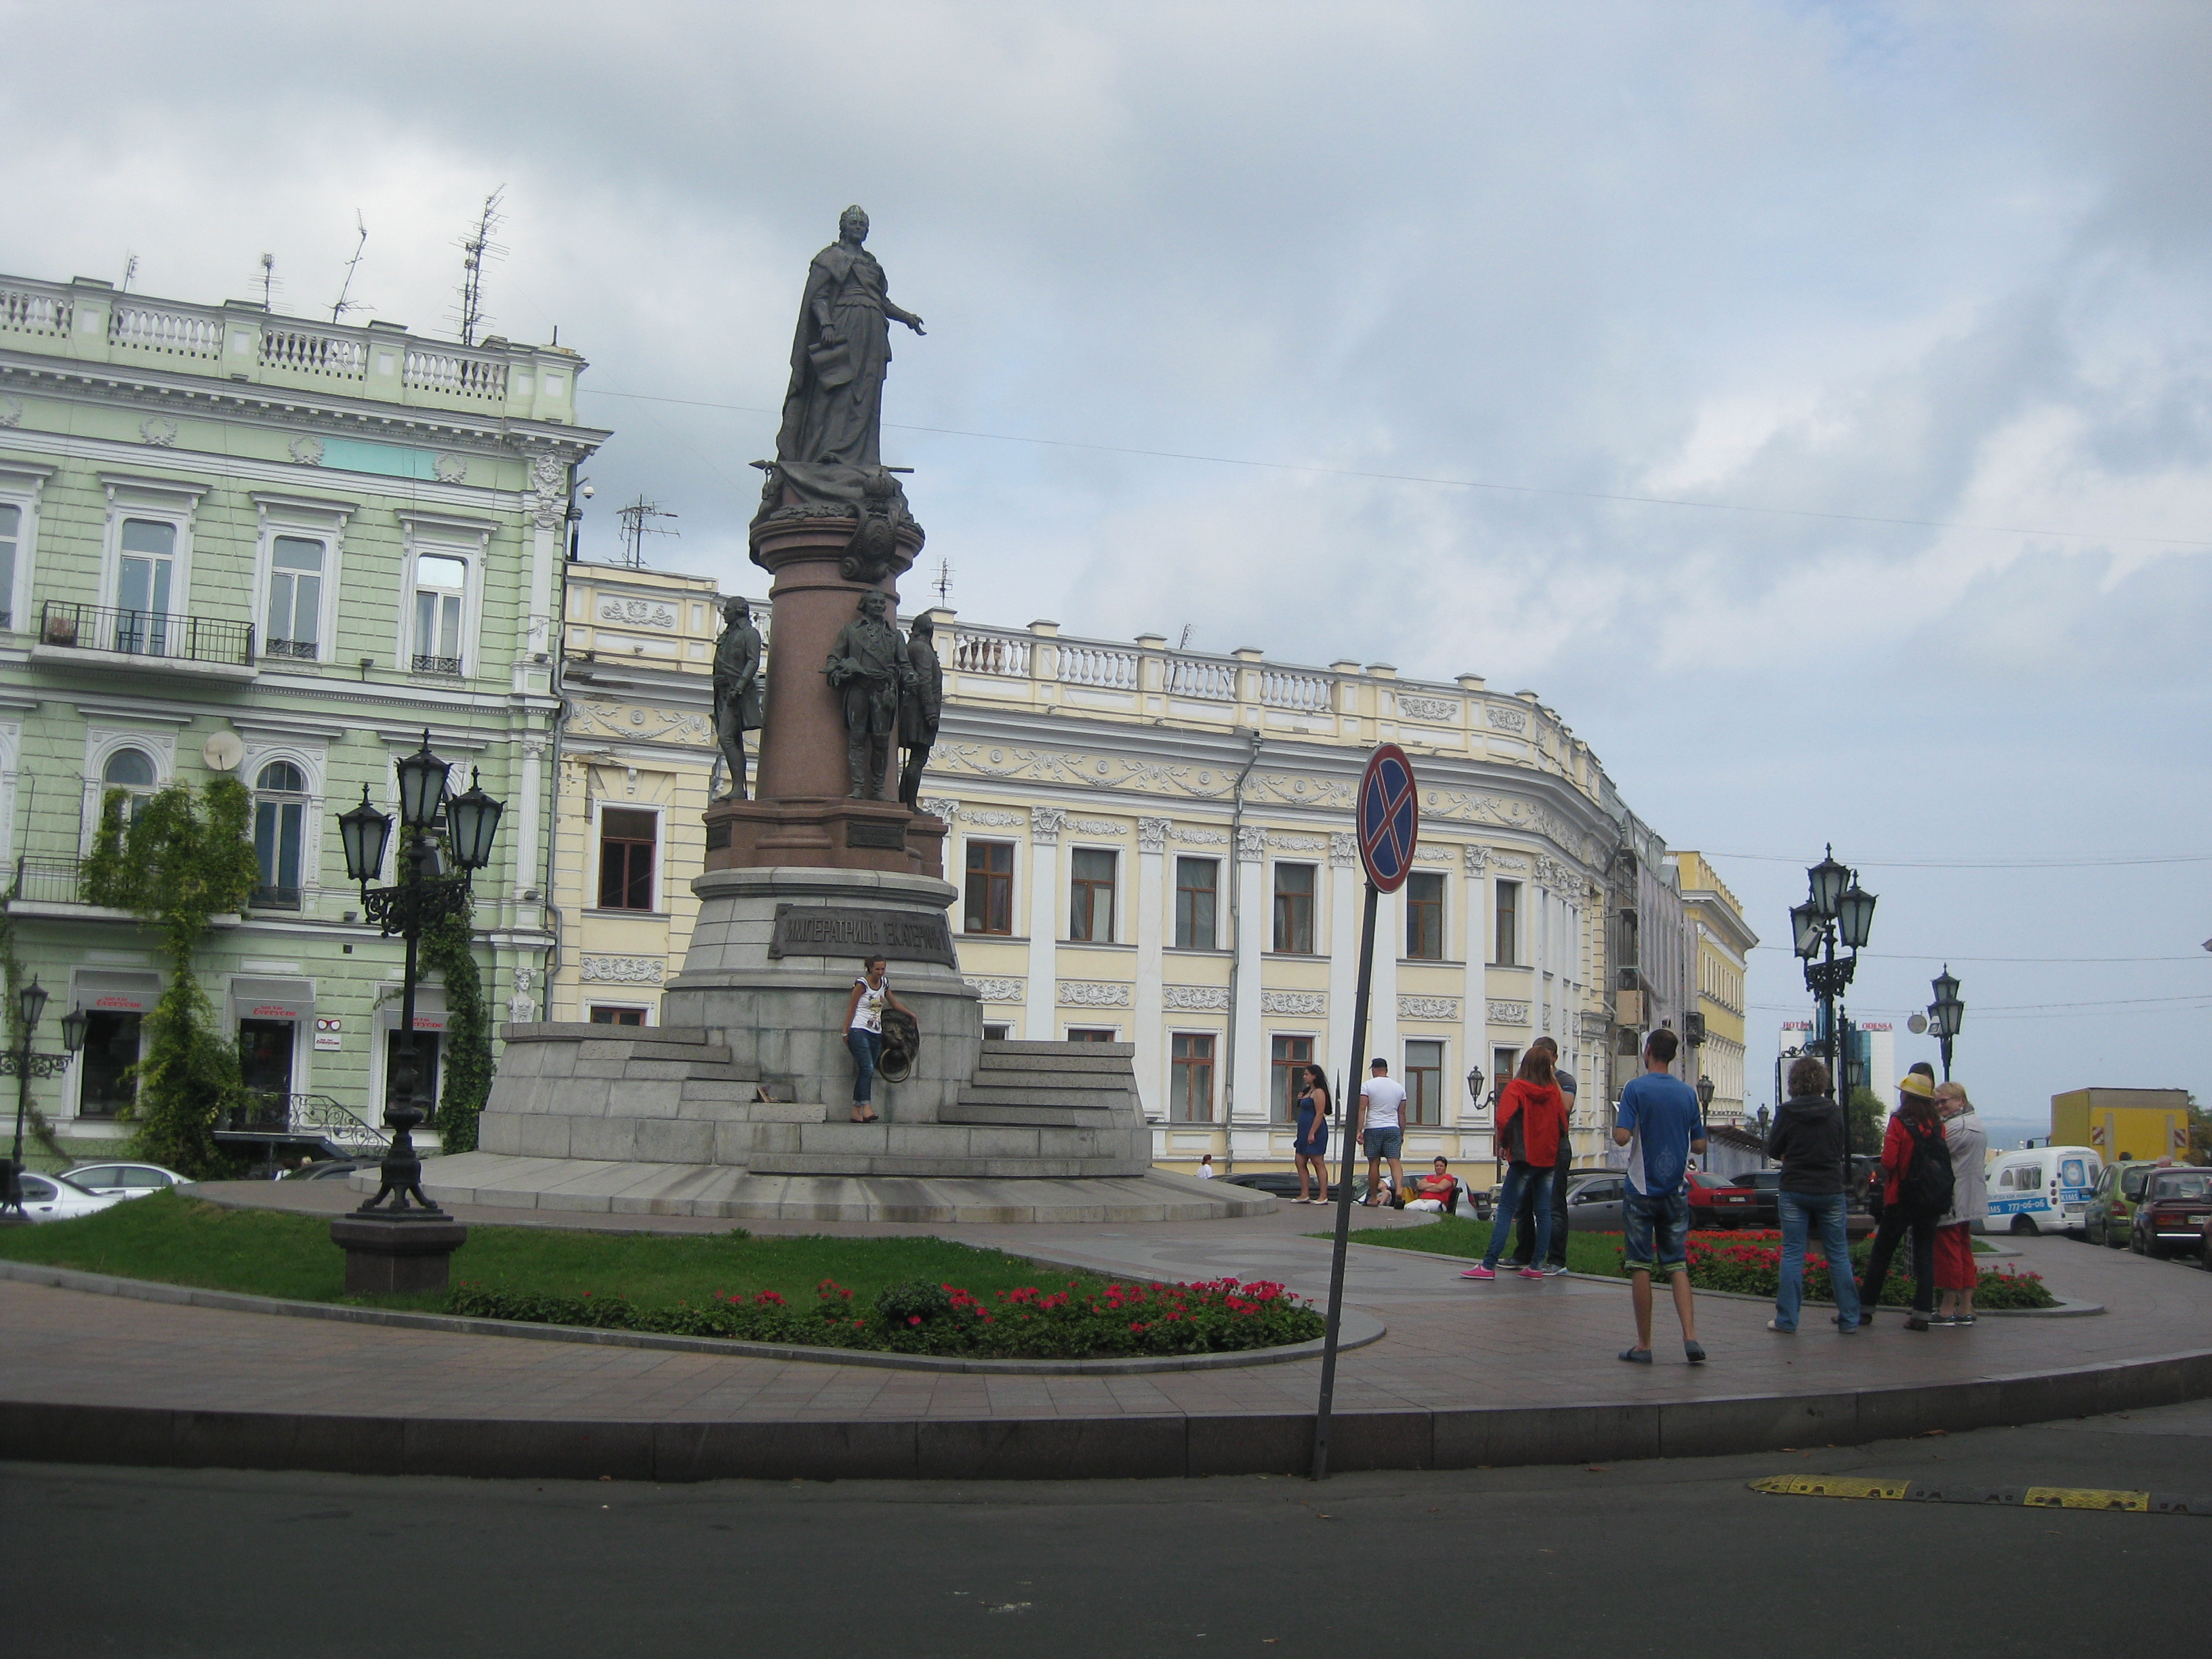 Catherine the great monument in Odessa Ukraine.